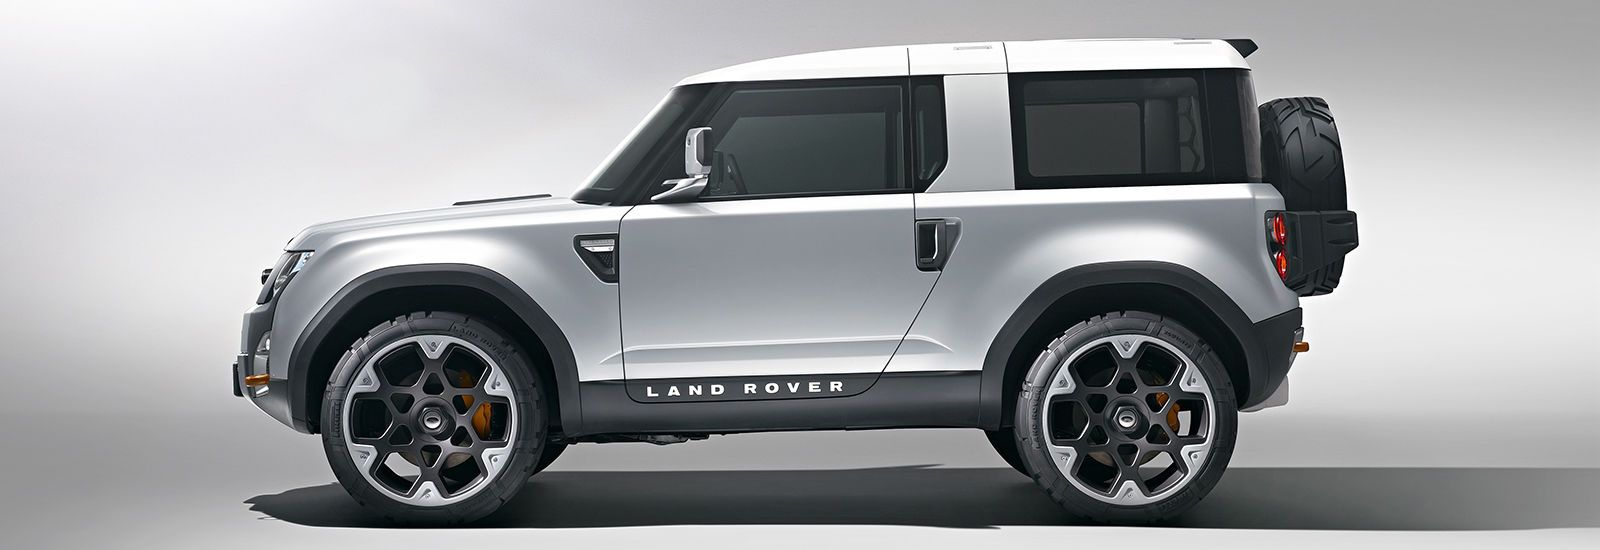 new land rover defender price, specs and release date | carwow